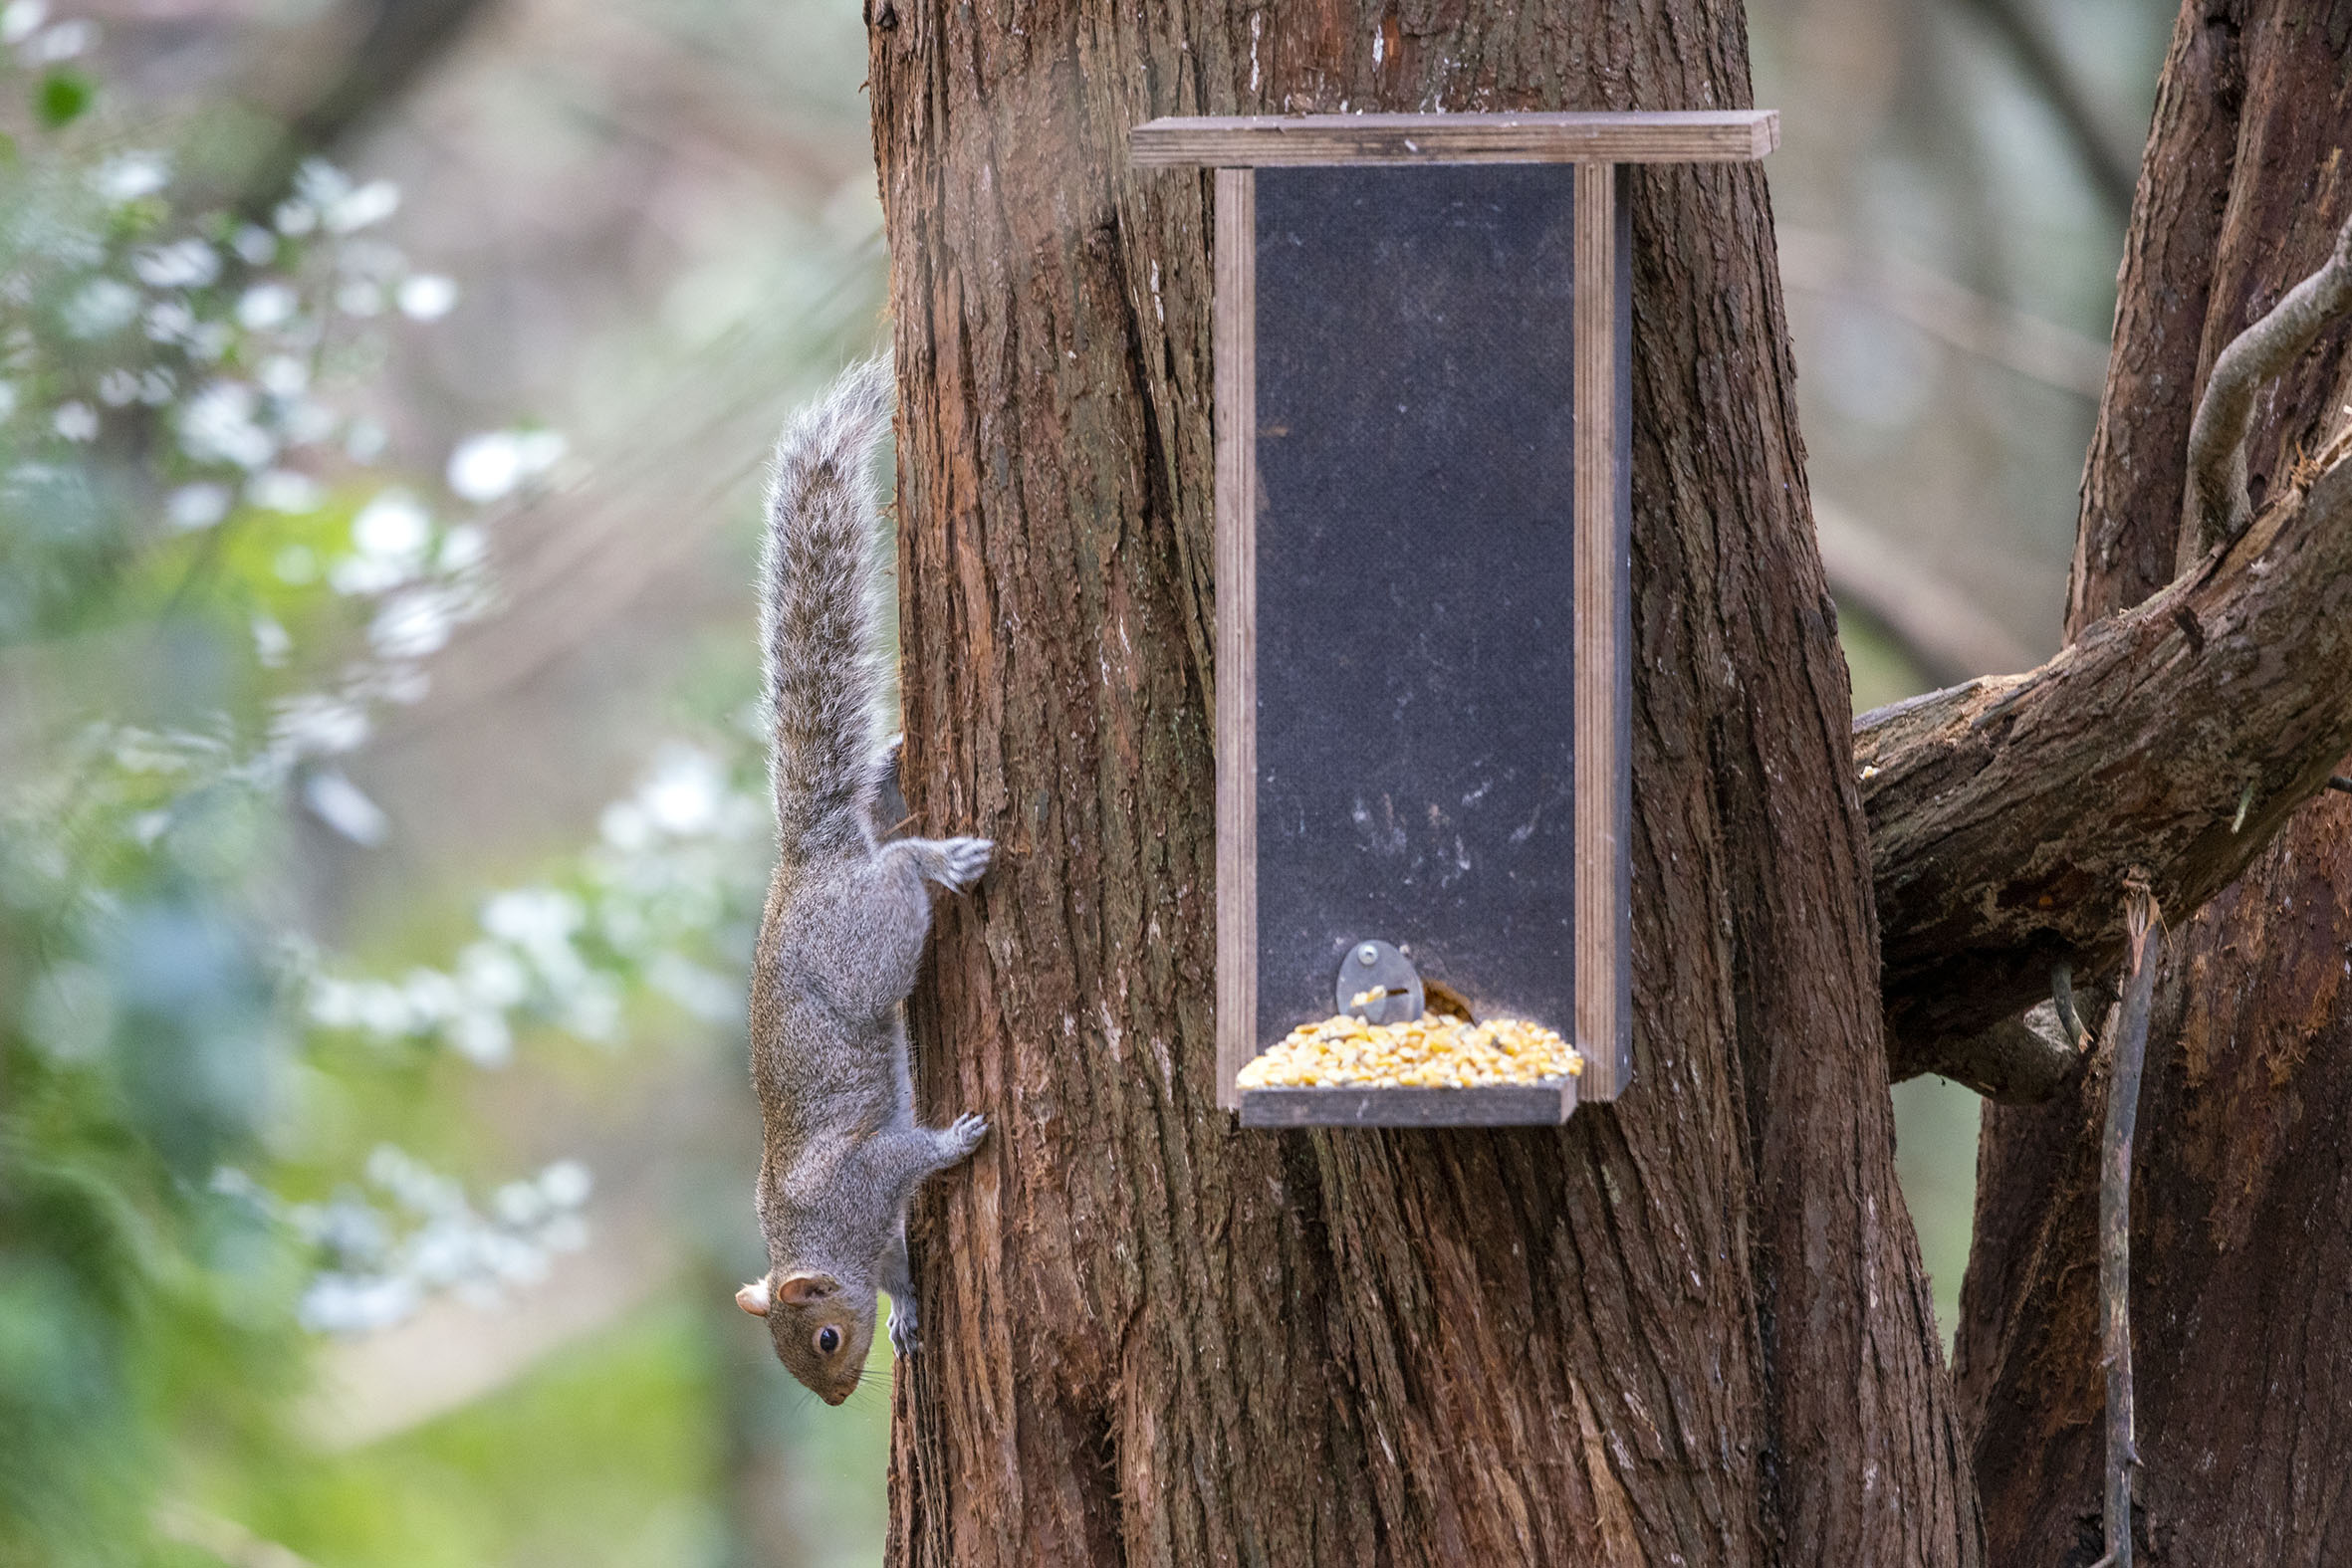 Grey squirrel examining ranger's feeding station.